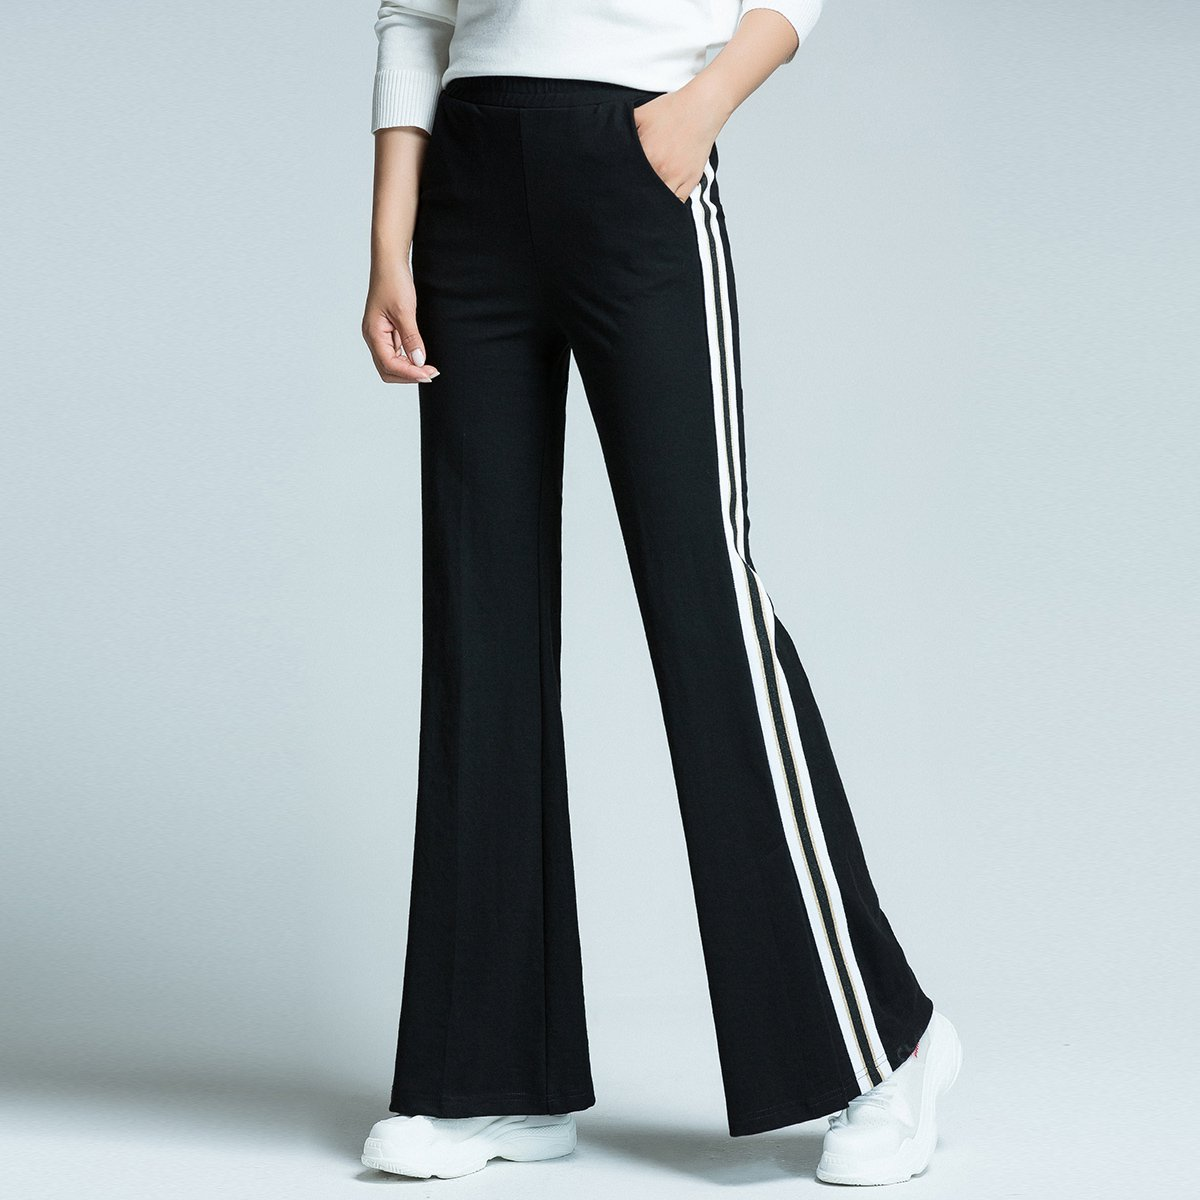 Loose  And Easy Straight Side Striped Flared Trousers For Women's Casual Wide-Leg Trousers